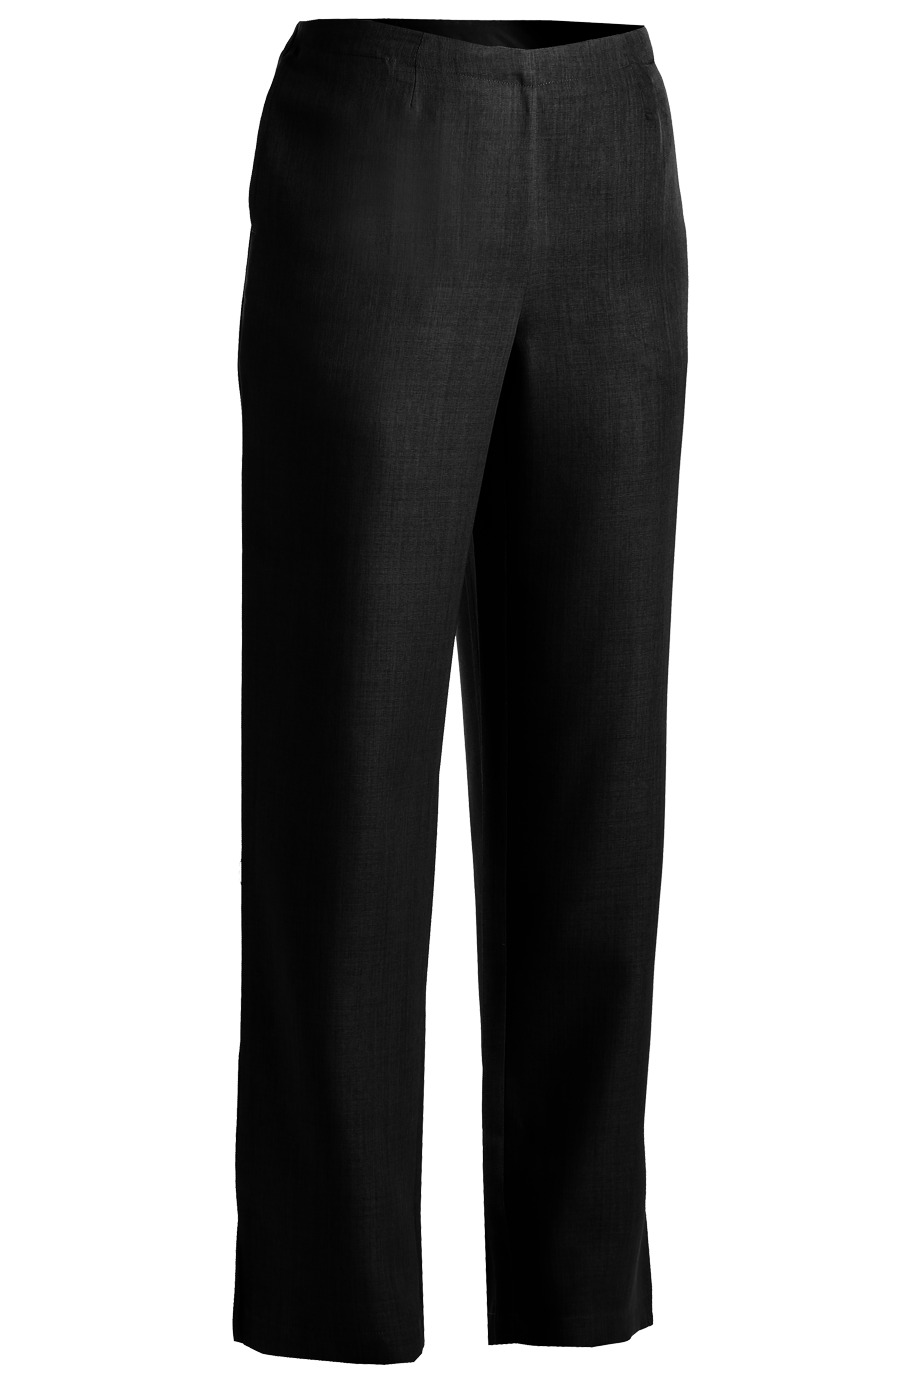 Edwards Garment 8891 - Premier Pull On Pant